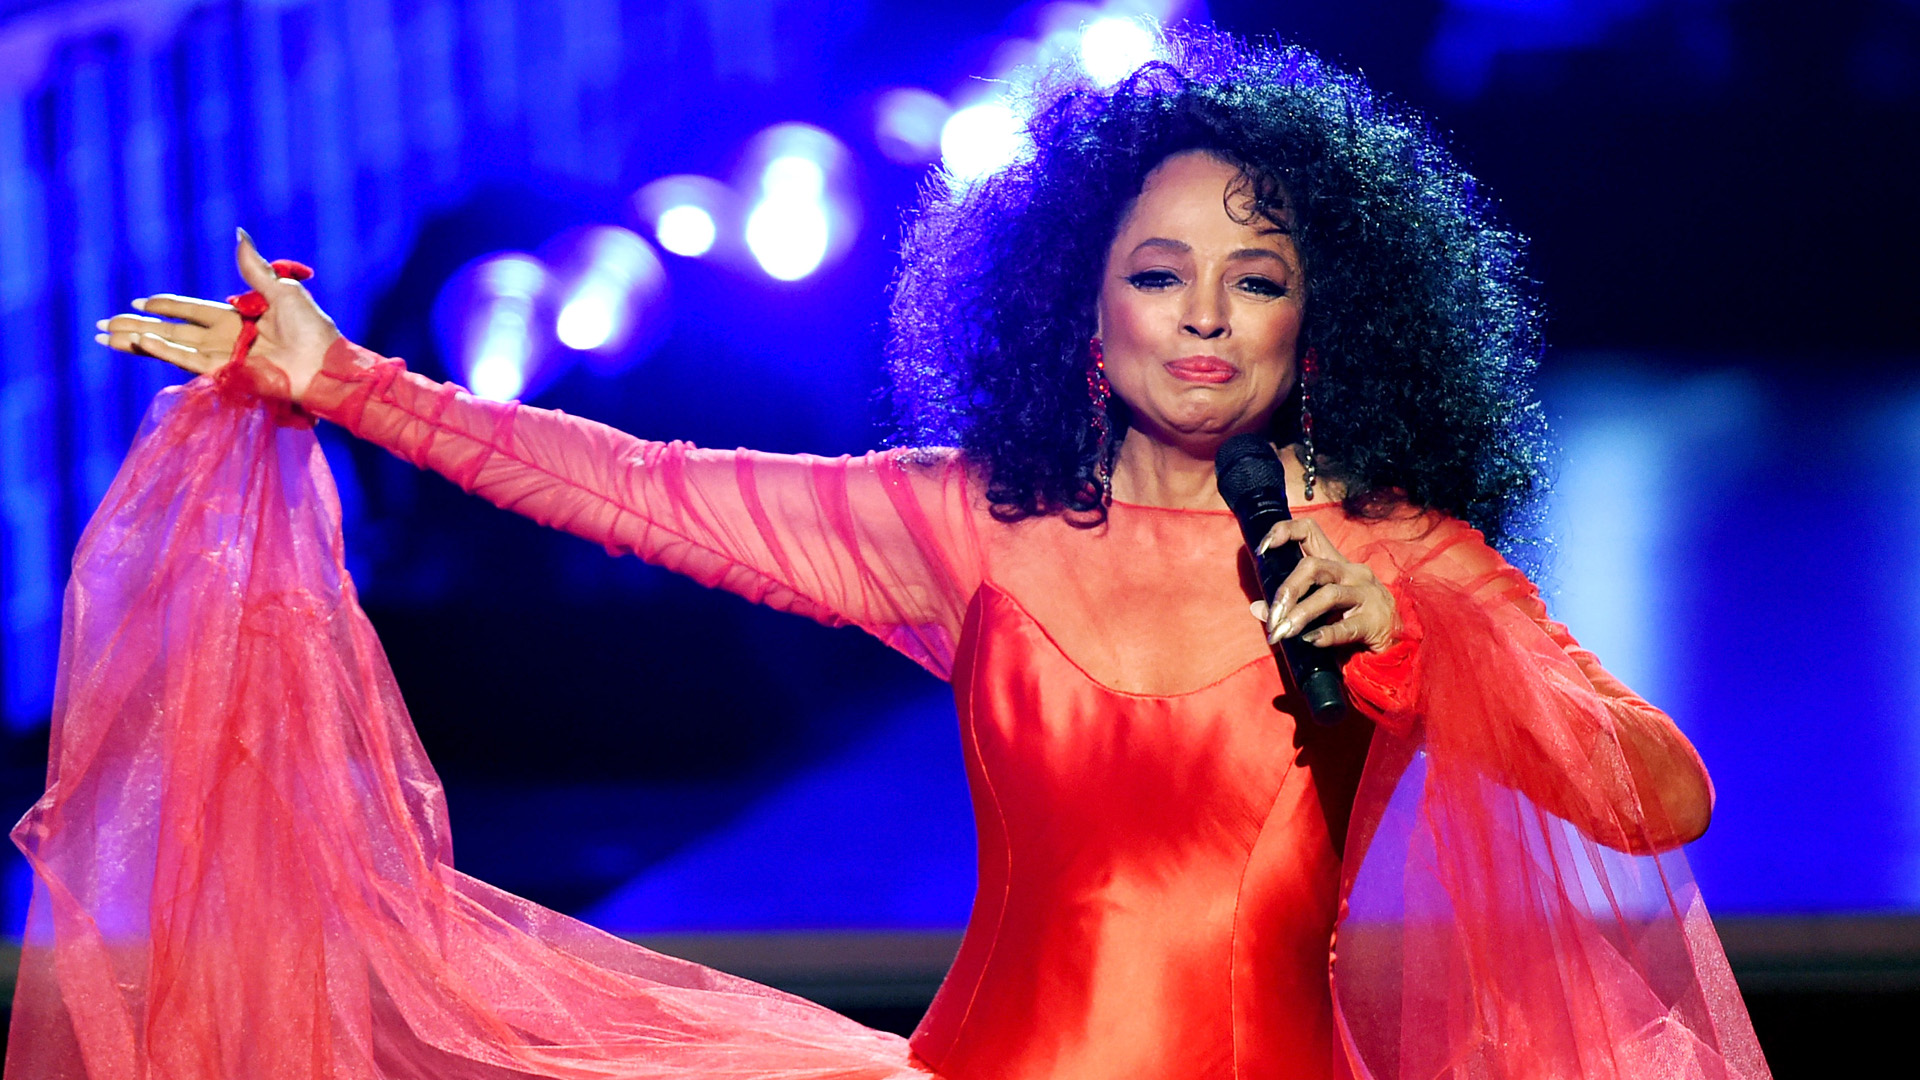 grammy awards diana ross 021019 _1549856673693